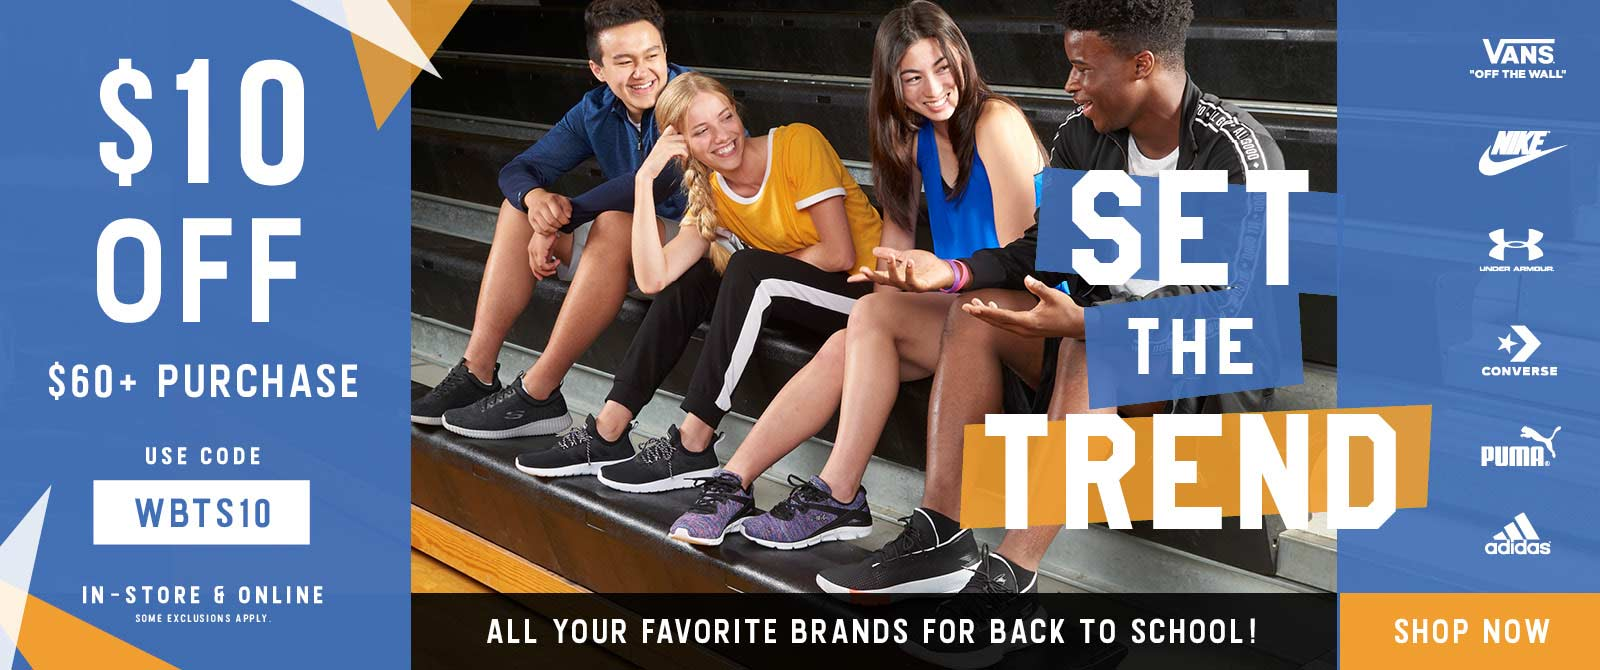 Shop your favorite shoe brands for back-to-school